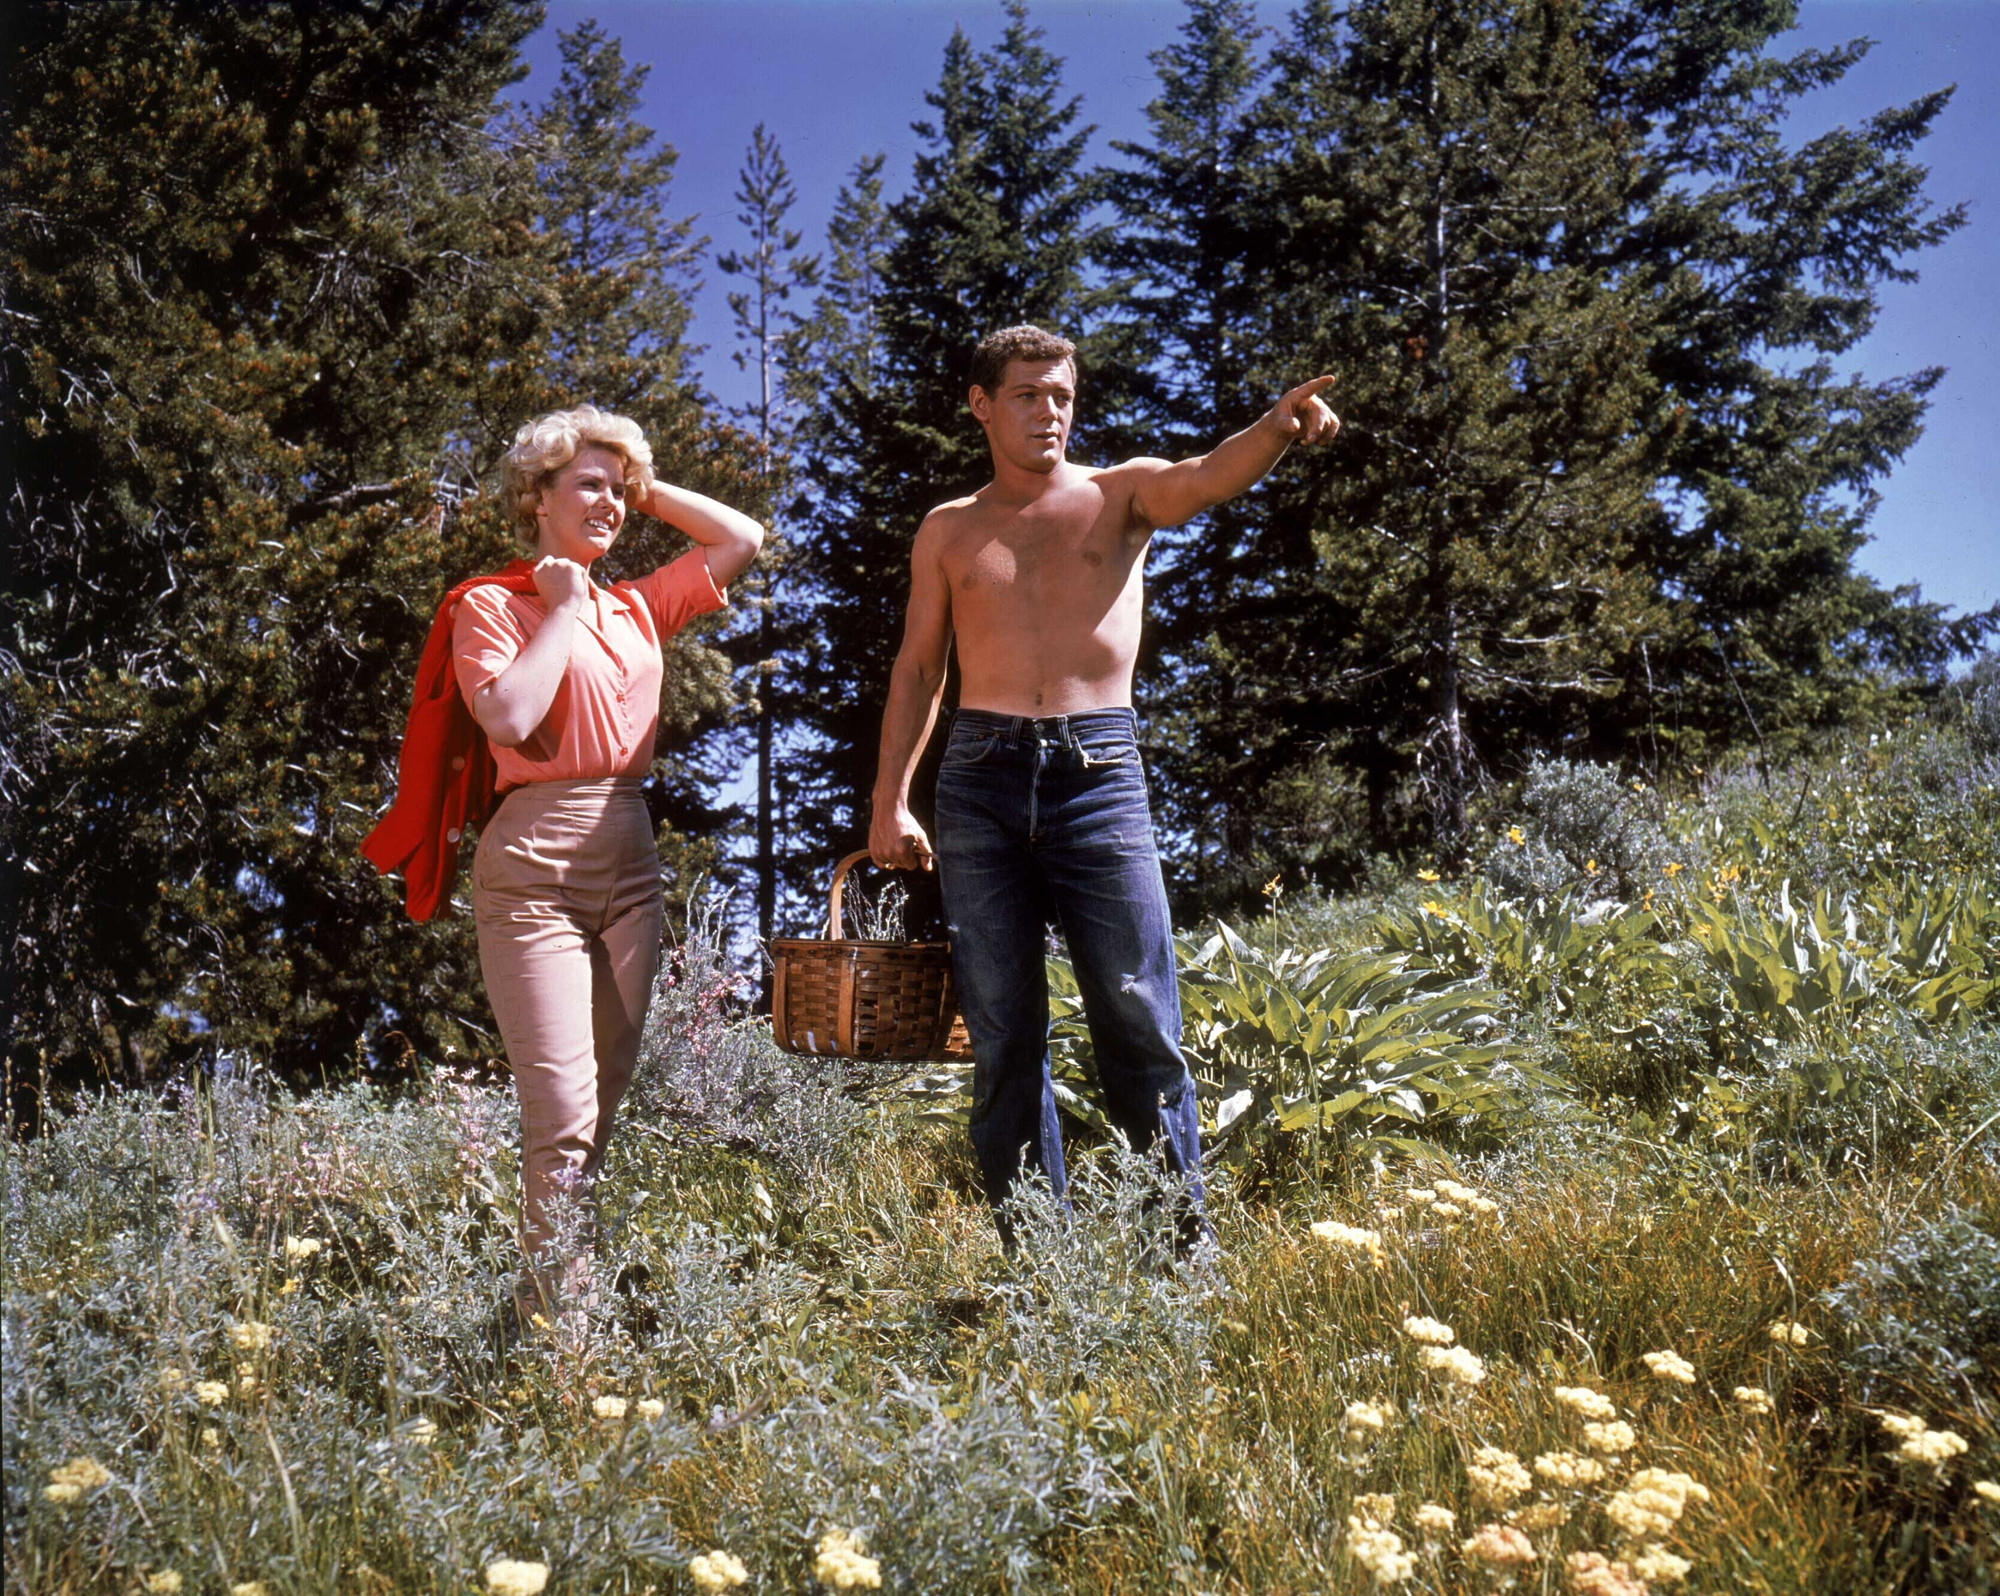 Spencer's Mountain. 1963. USA. Written and directed by Delmer Daves